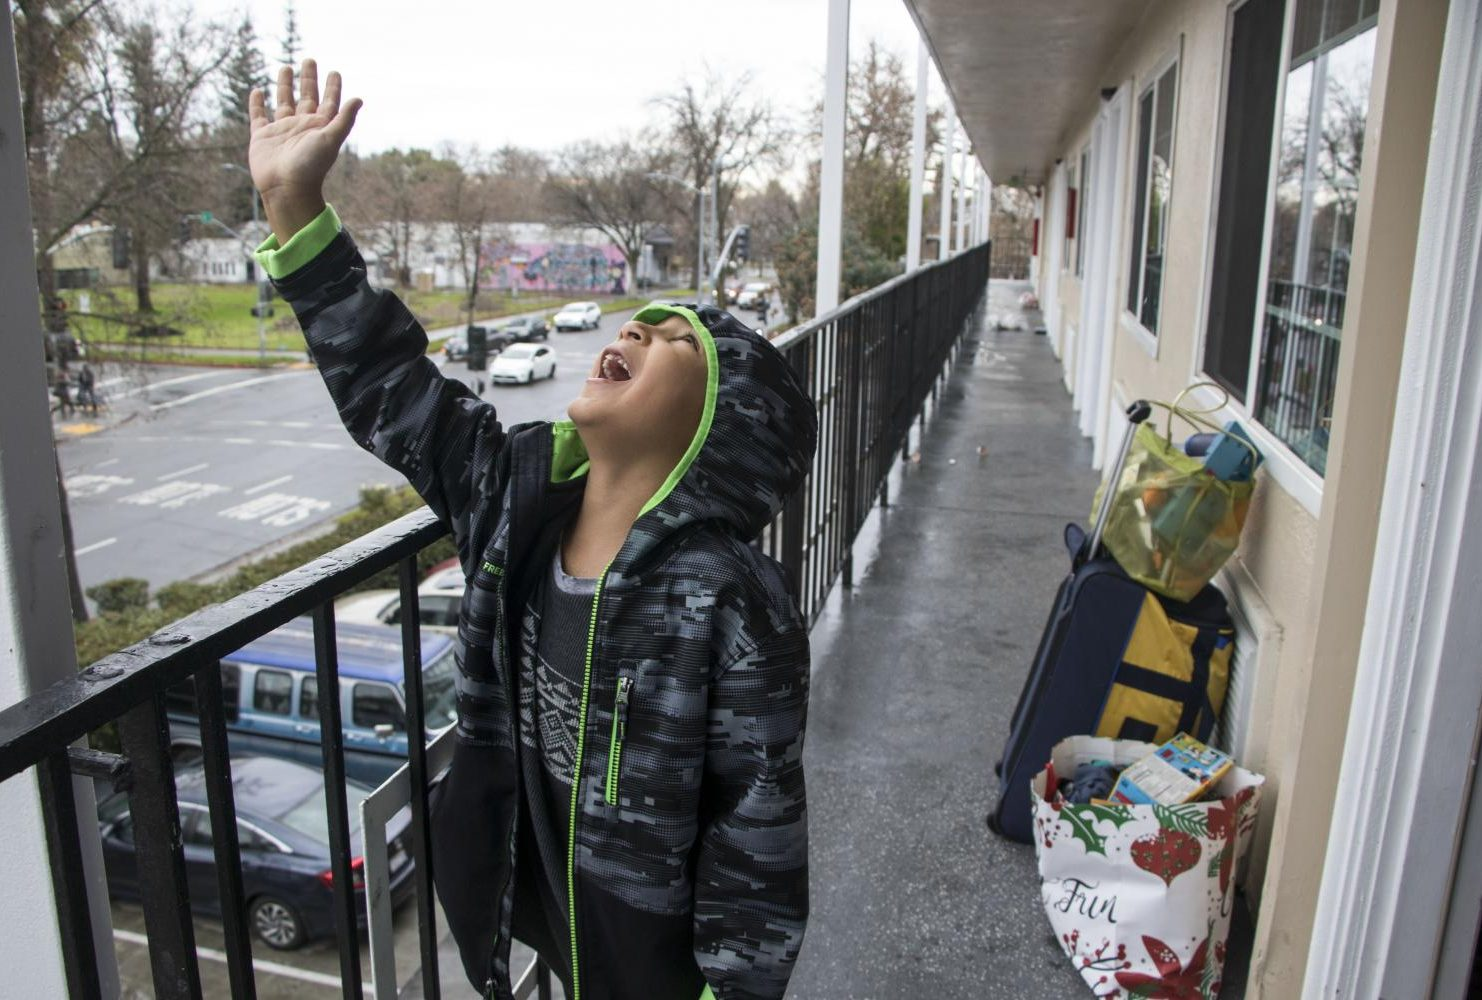 Duren-Hill's son waits outside their motel room as his mother packs the rest of their belongings on Jan. 5, 2019. (Photo by Ashley Hayes-Stone)